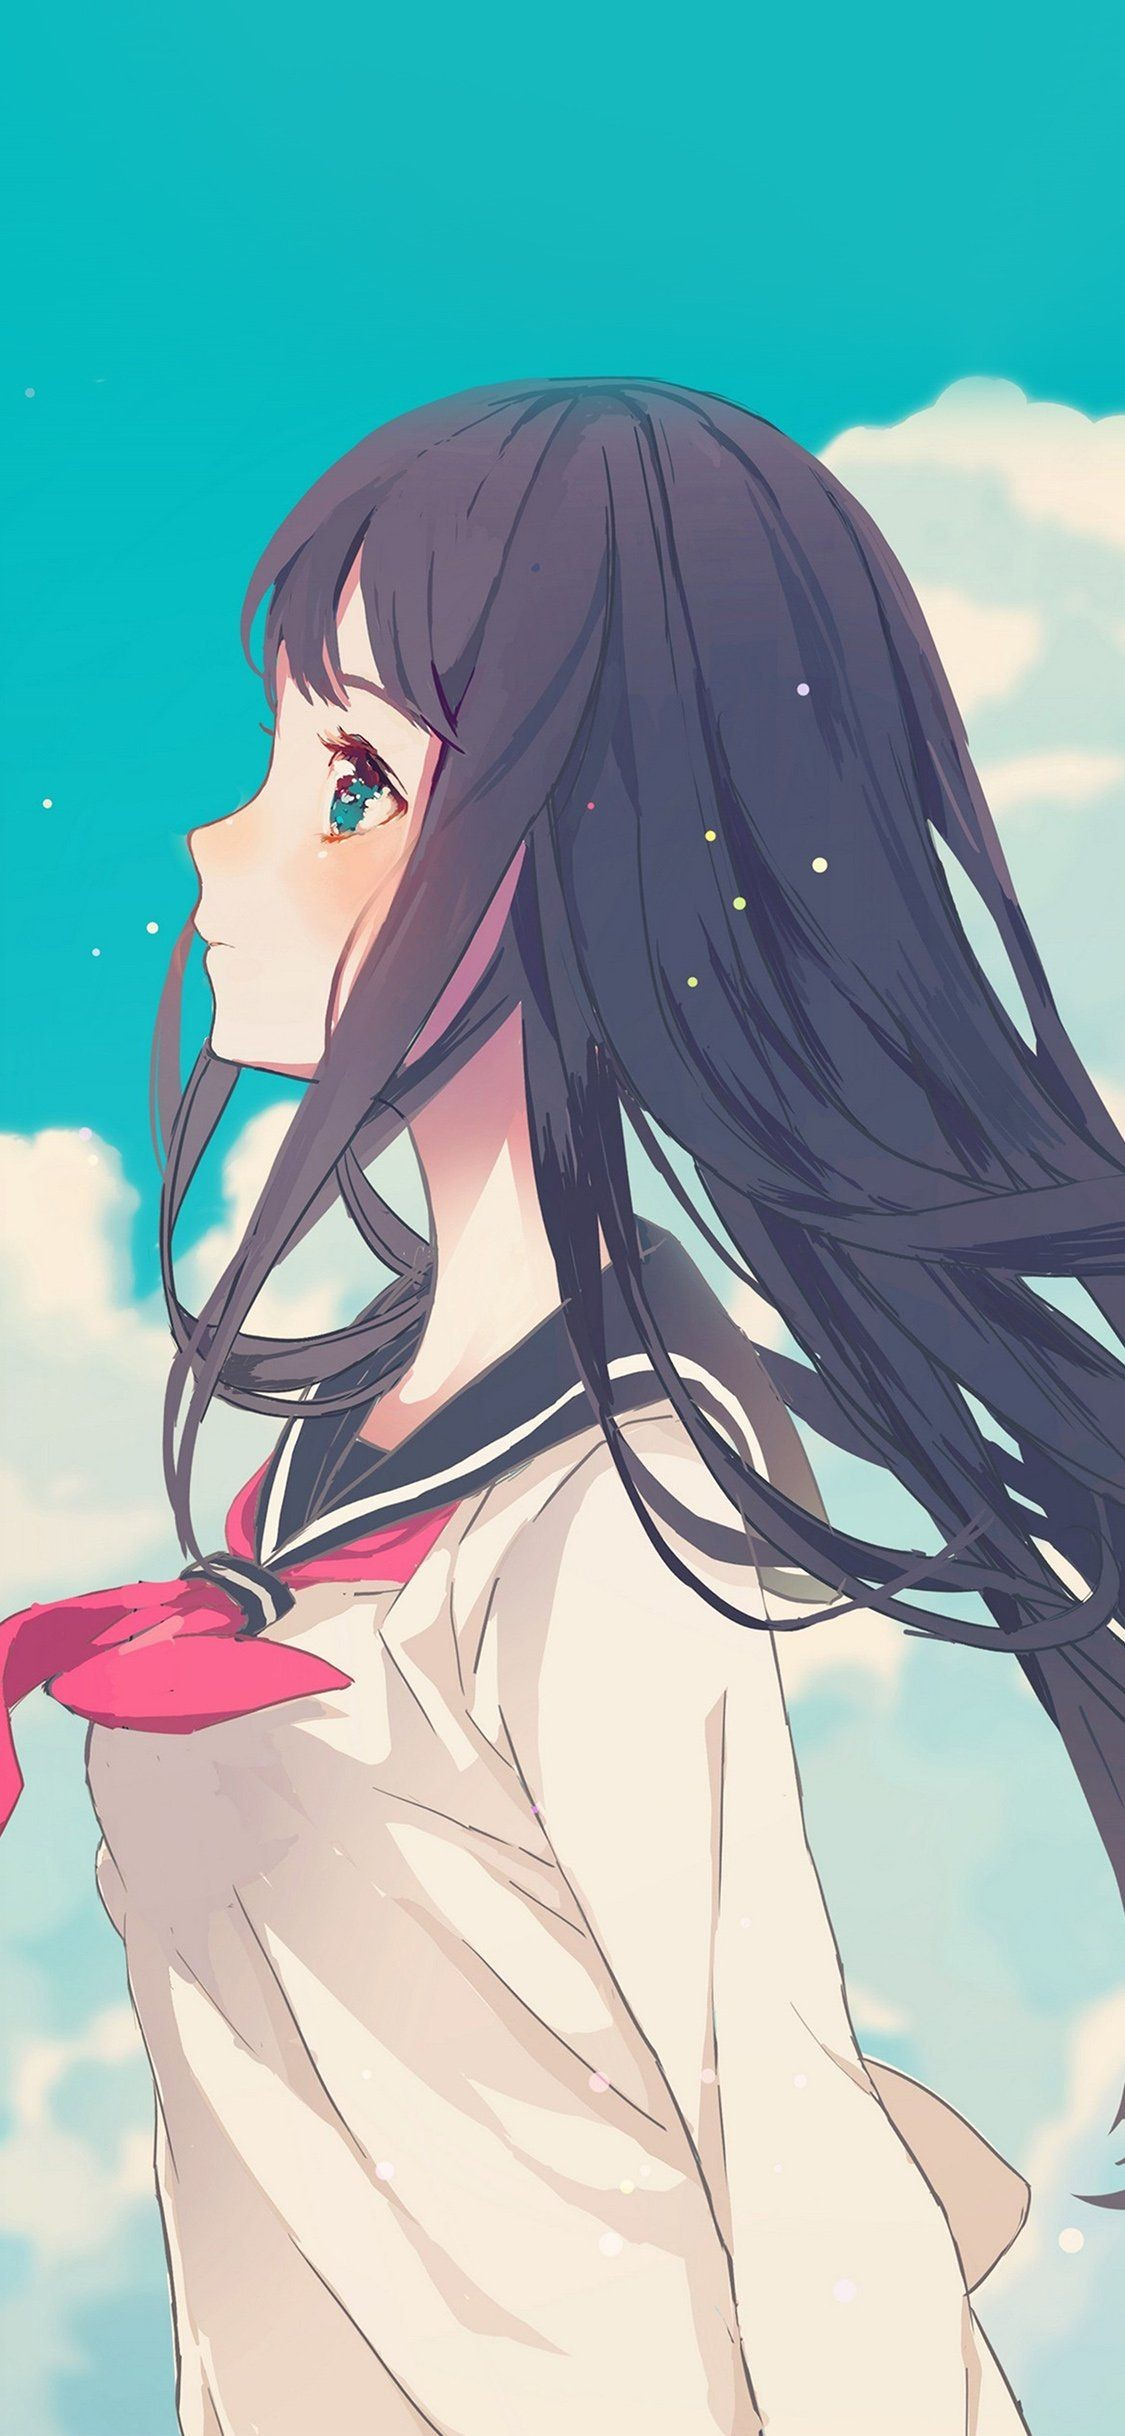 Cool Anime Iphone Wallpaper 85 Images